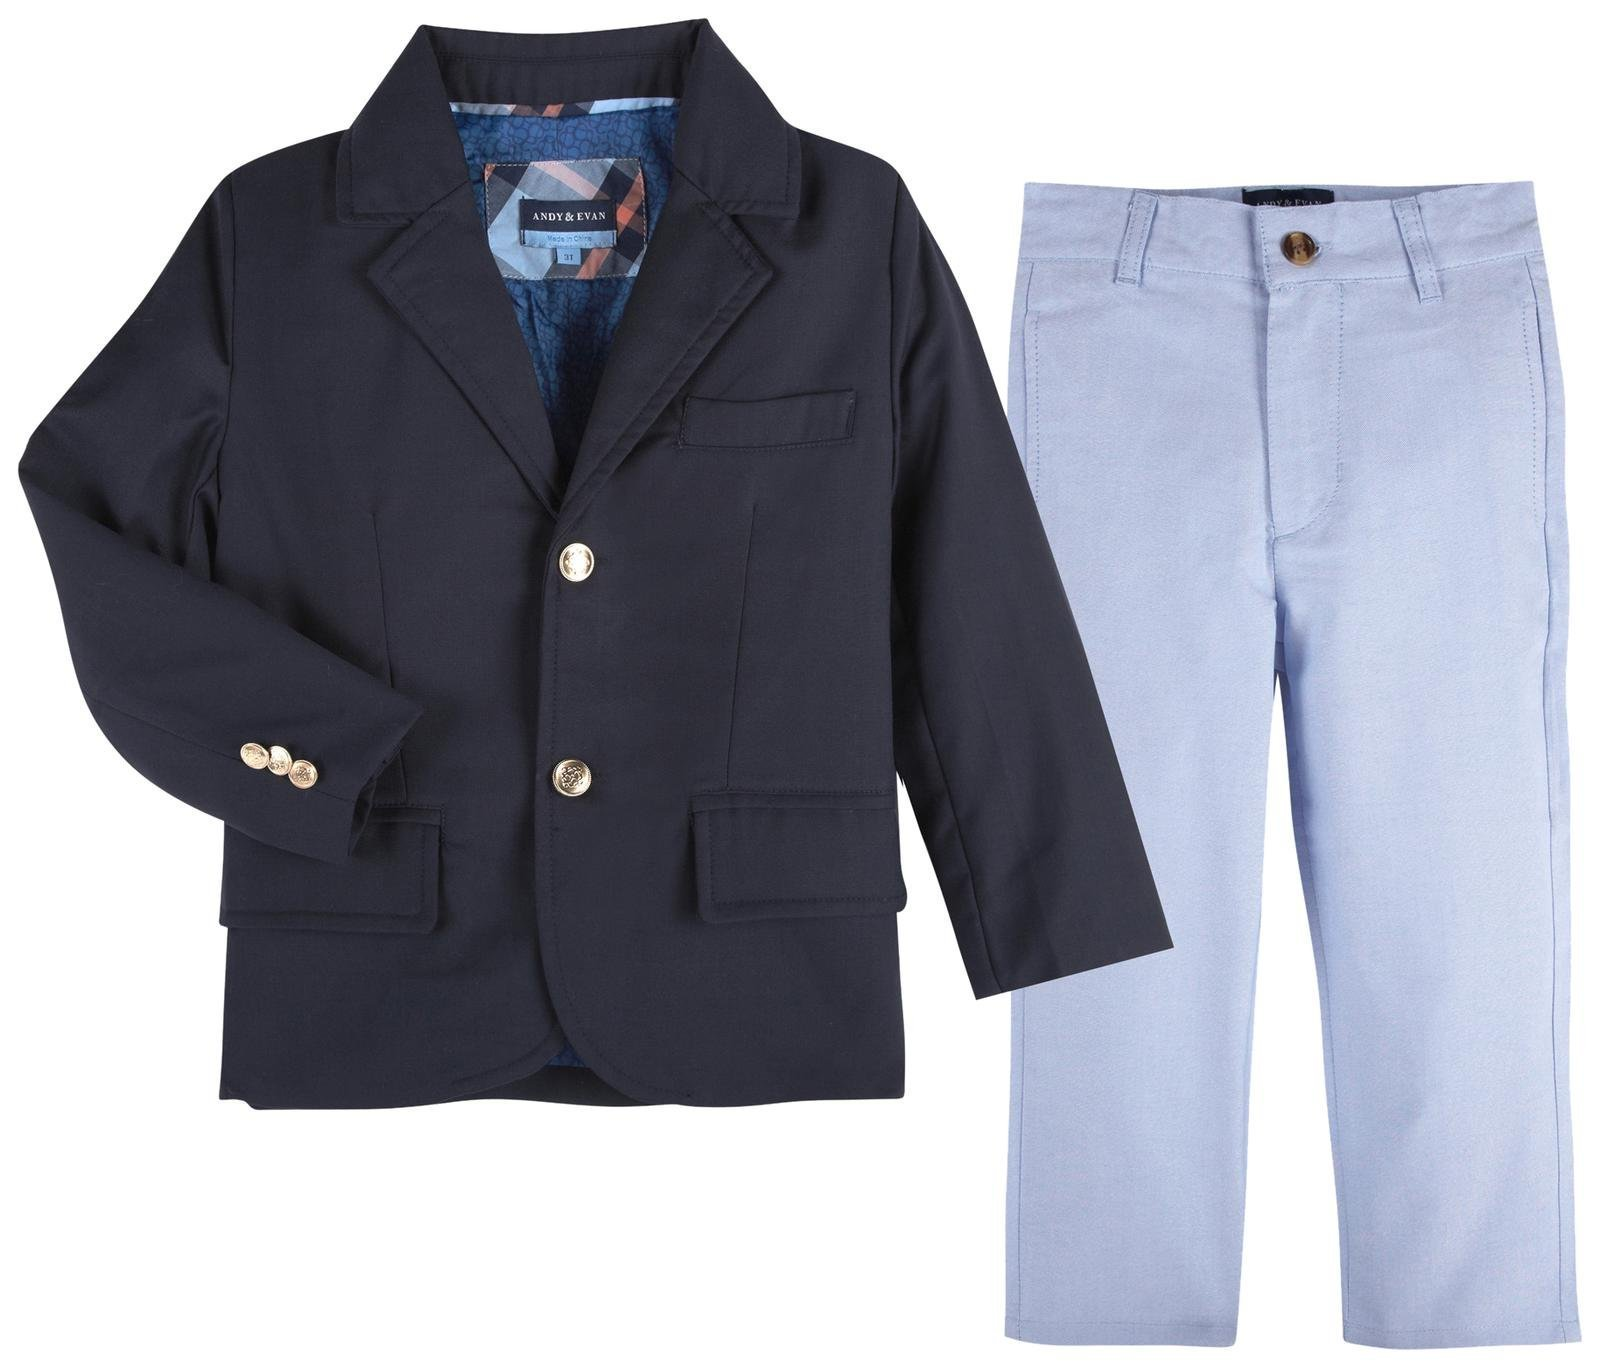 Andy & Evan Boys' Twill Blazer and Oxford Pant Set-Toddler, Navy, 4T by Andy & Evan